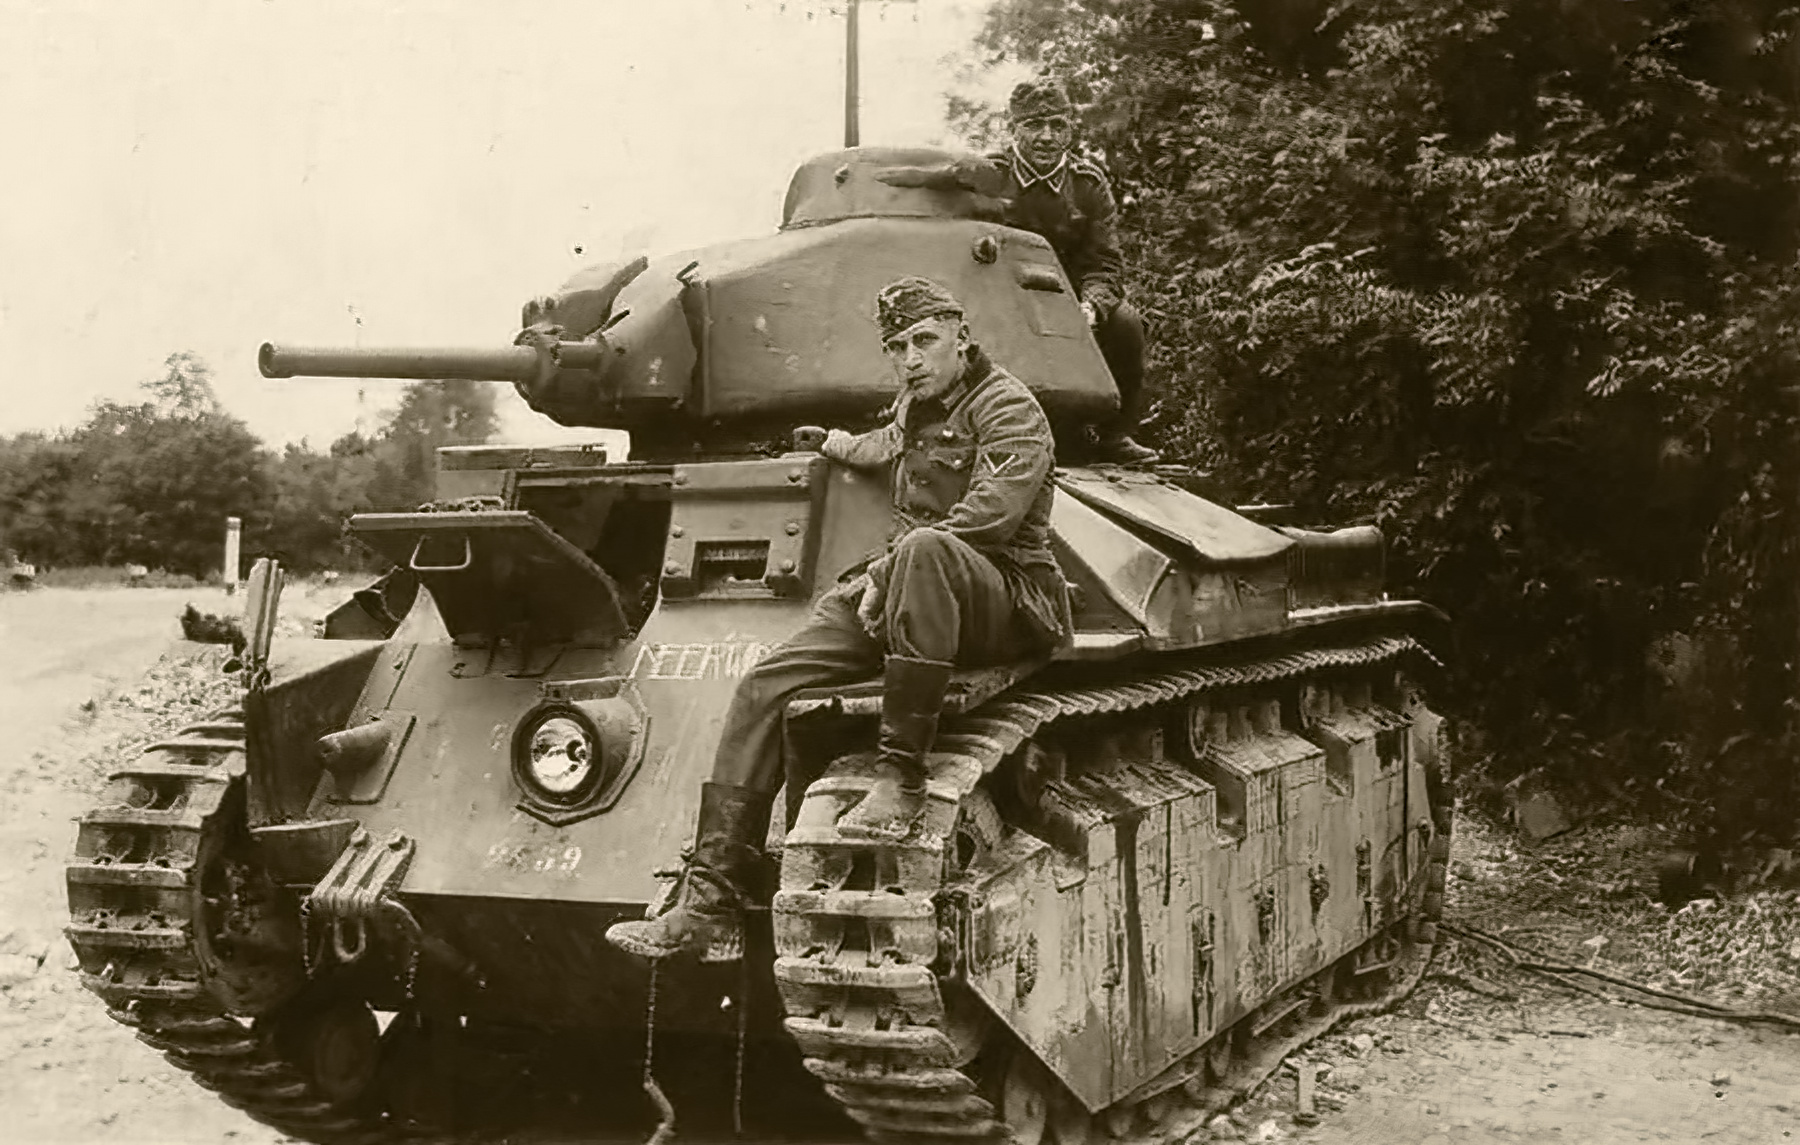 French Army Renault D2 tank captured battle of France 1940 web 02